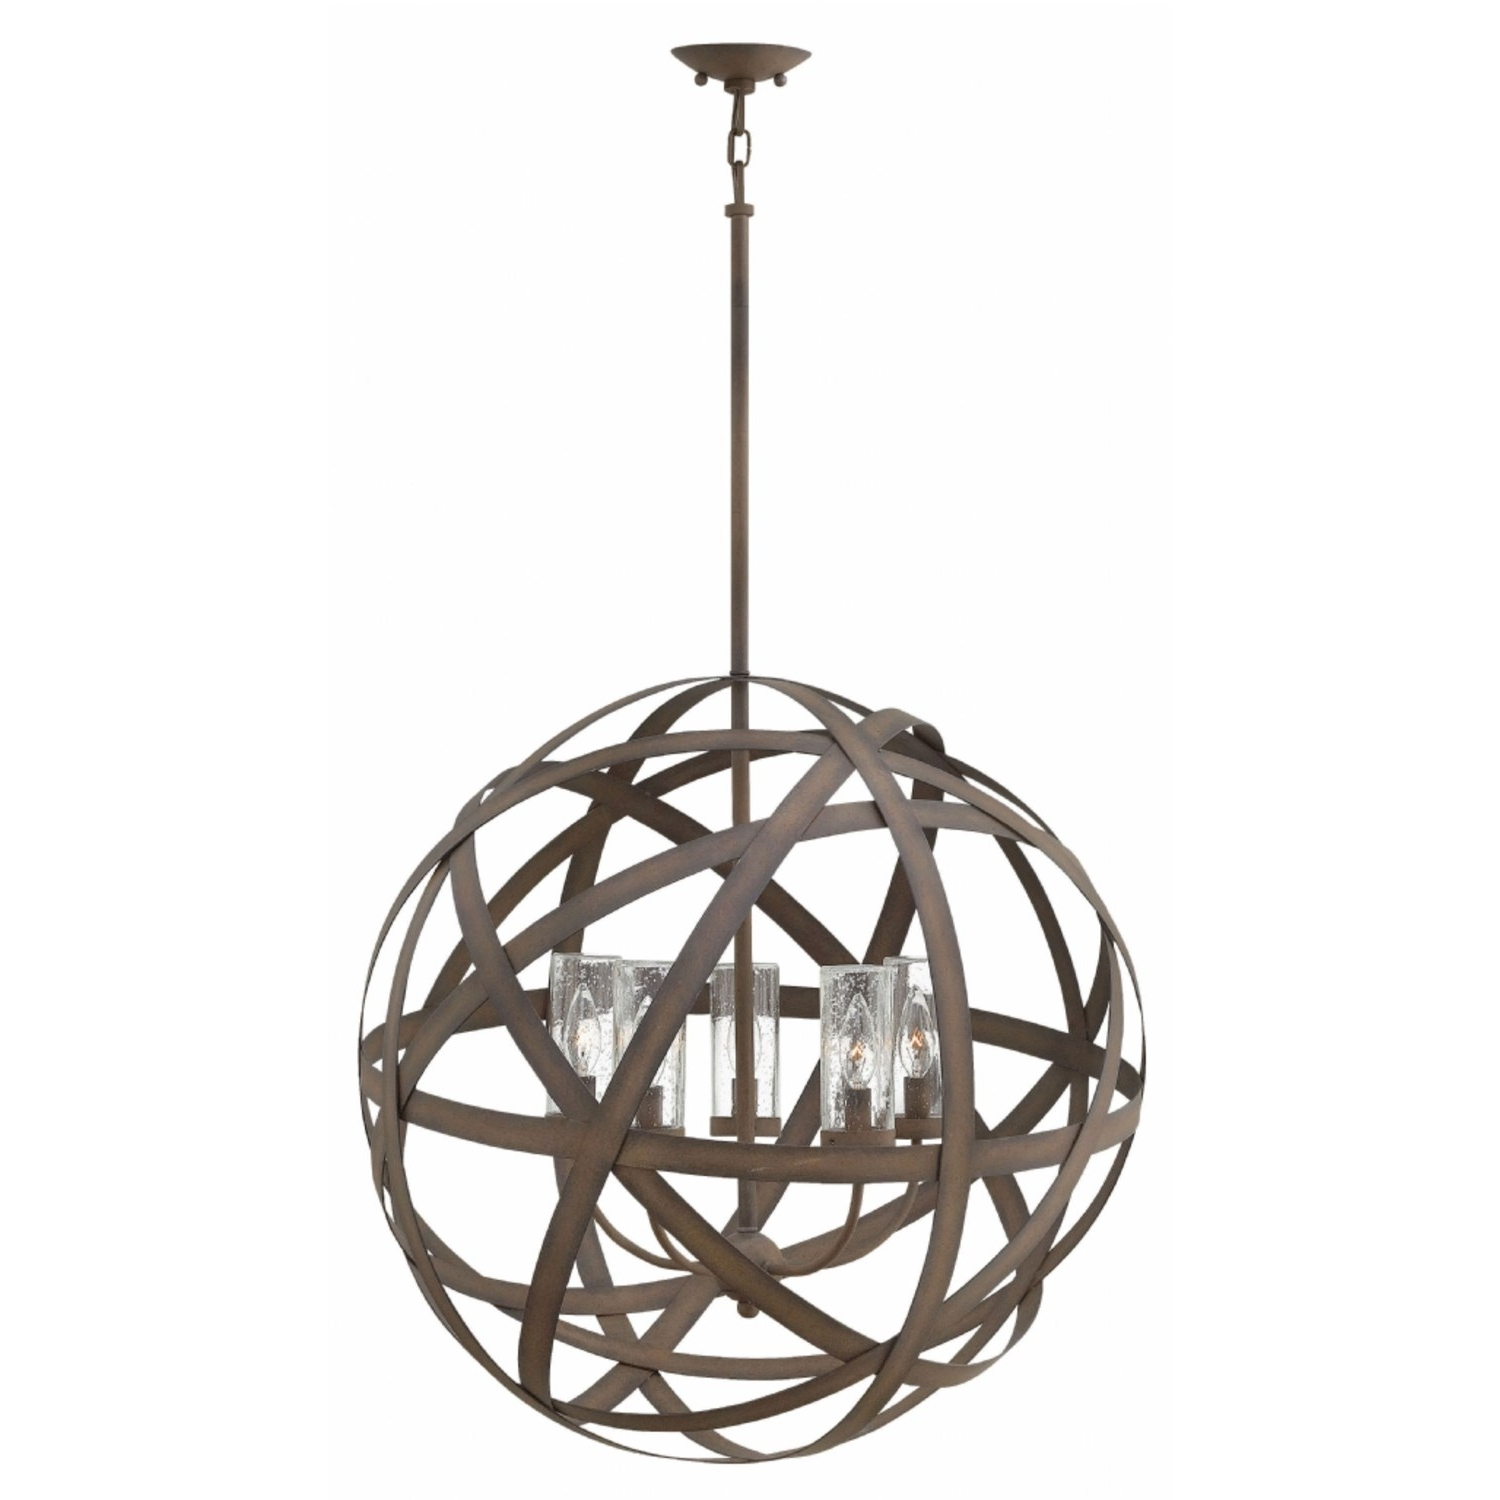 Hinkley Outdoor Ceiling Lights Pertaining To Most Recent Hinkley 29705Vi Carson 5 Light Outdoor Pendant In Vintage Iron (Gallery 8 of 20)